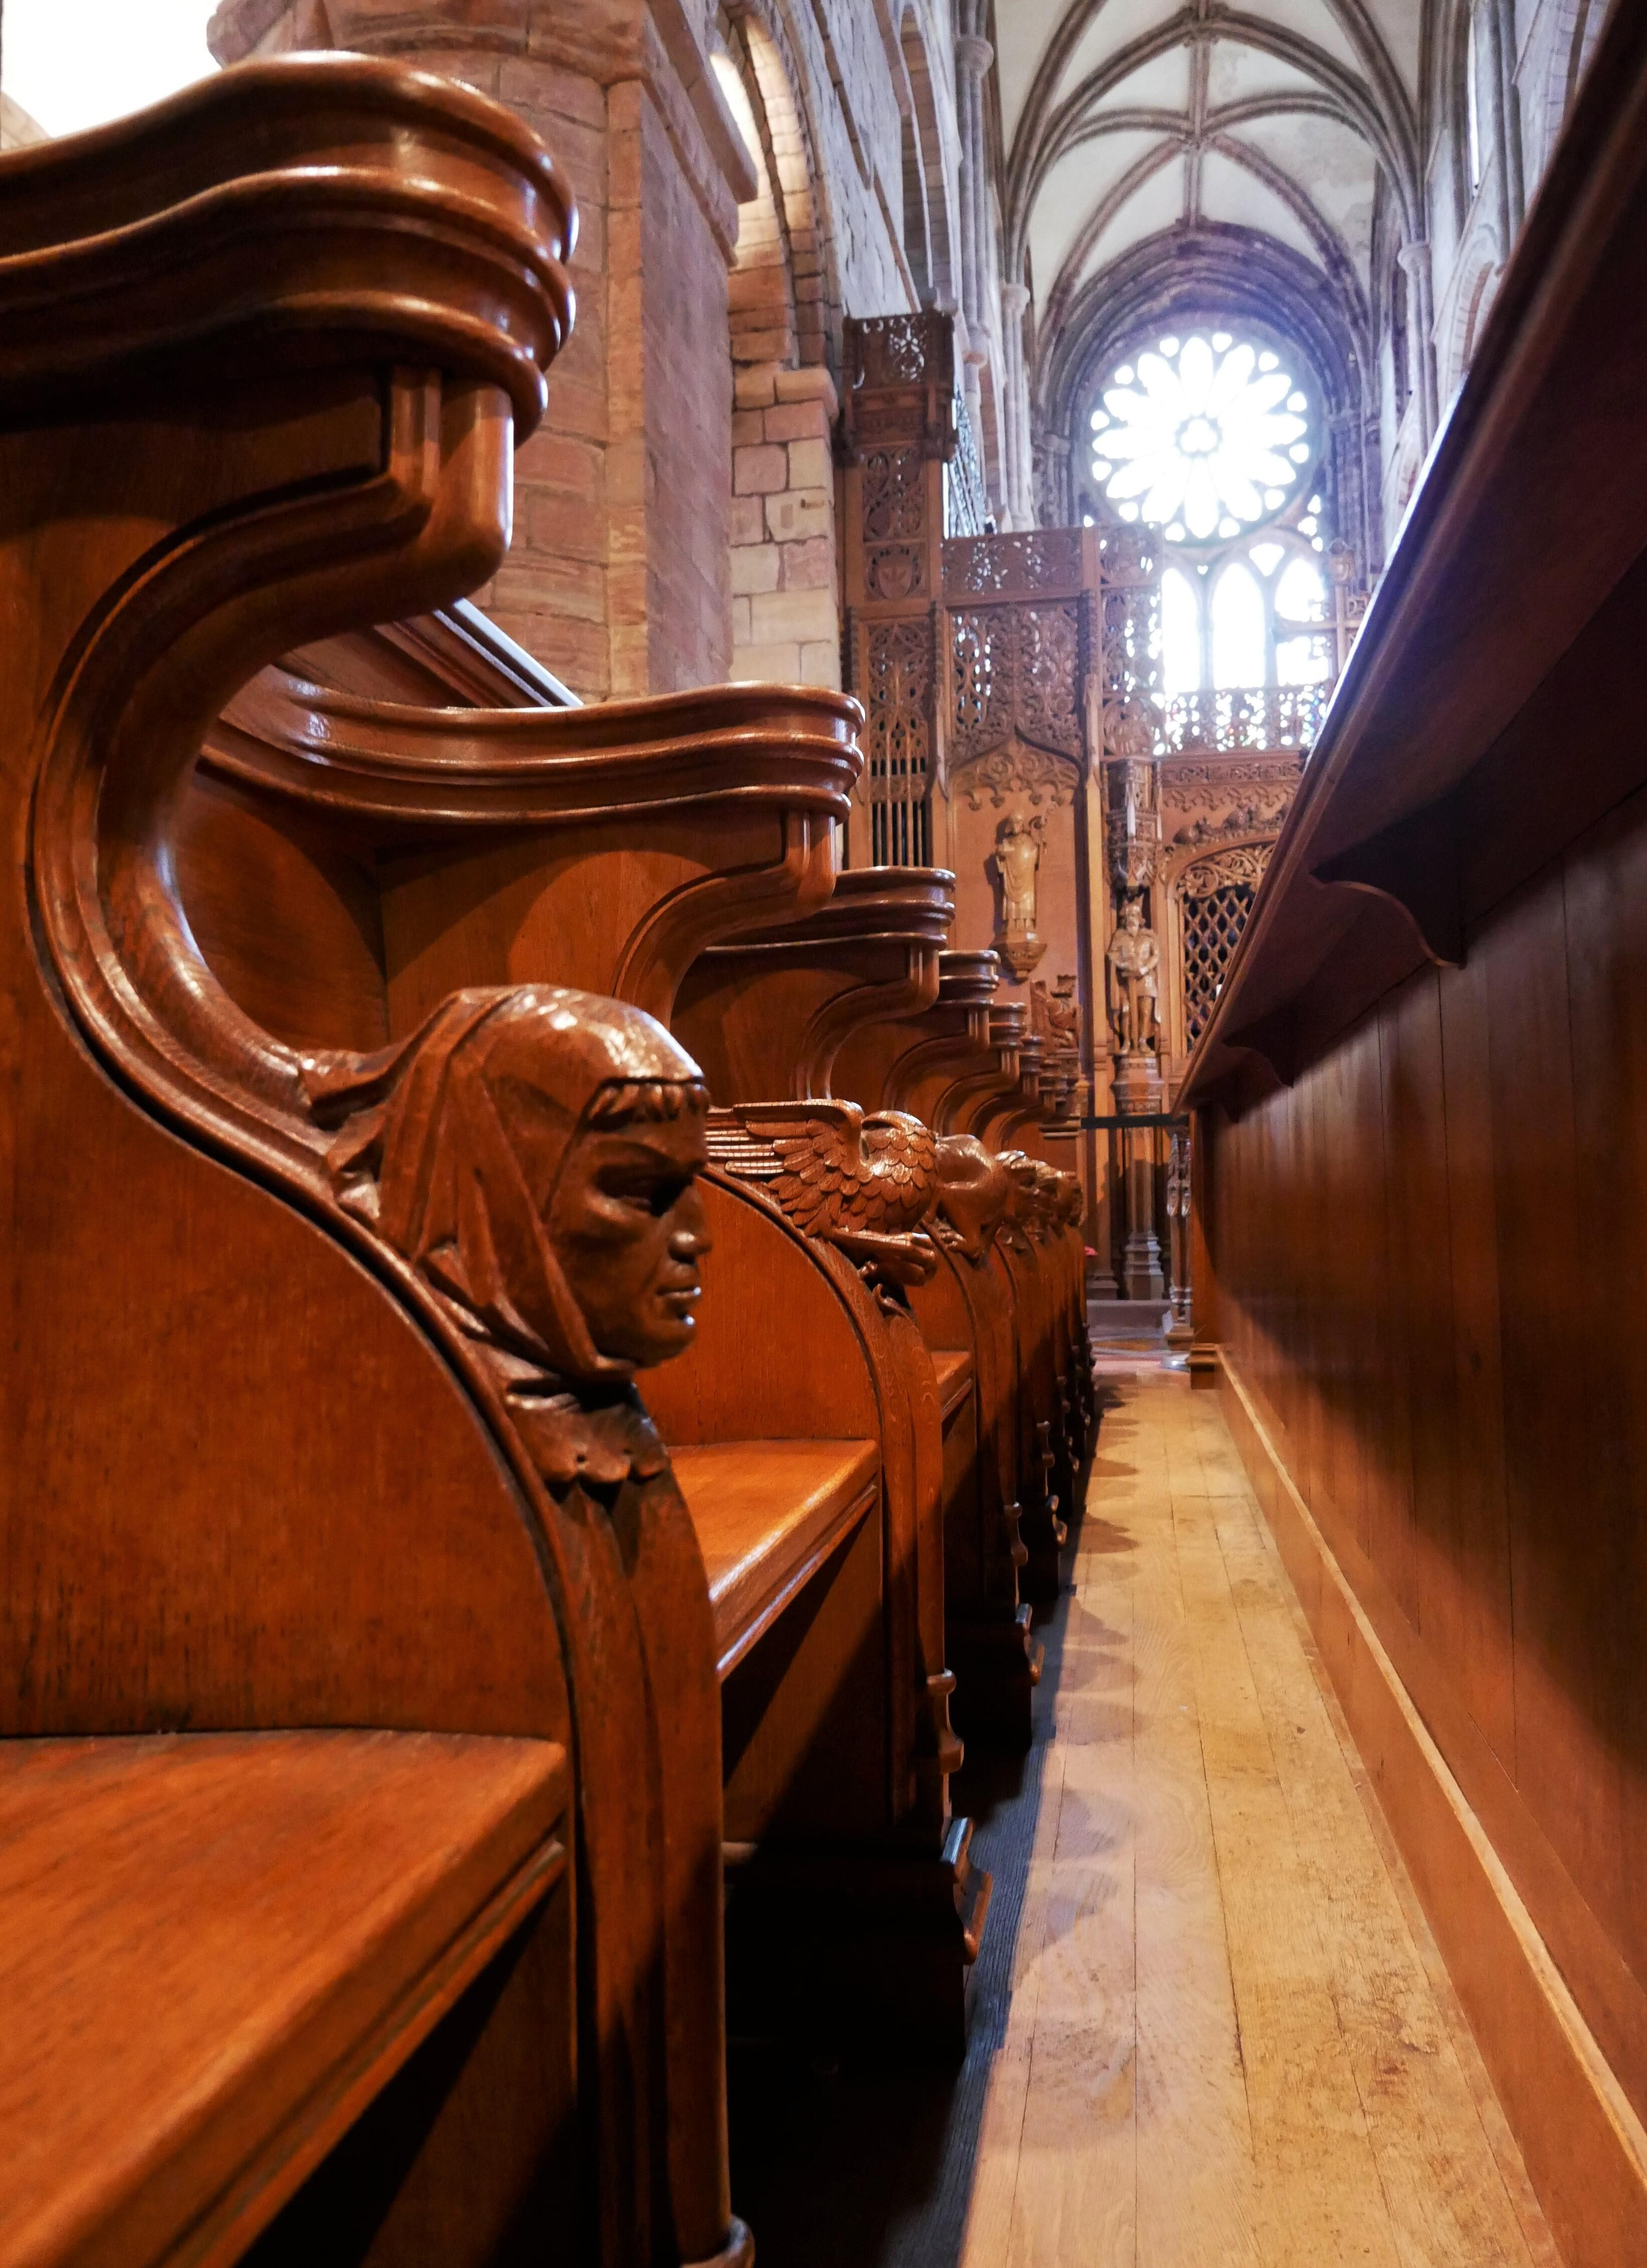 Wooden figures on the cathedral's pews - Kirkwall, Orkney Islands, Scotland, UK